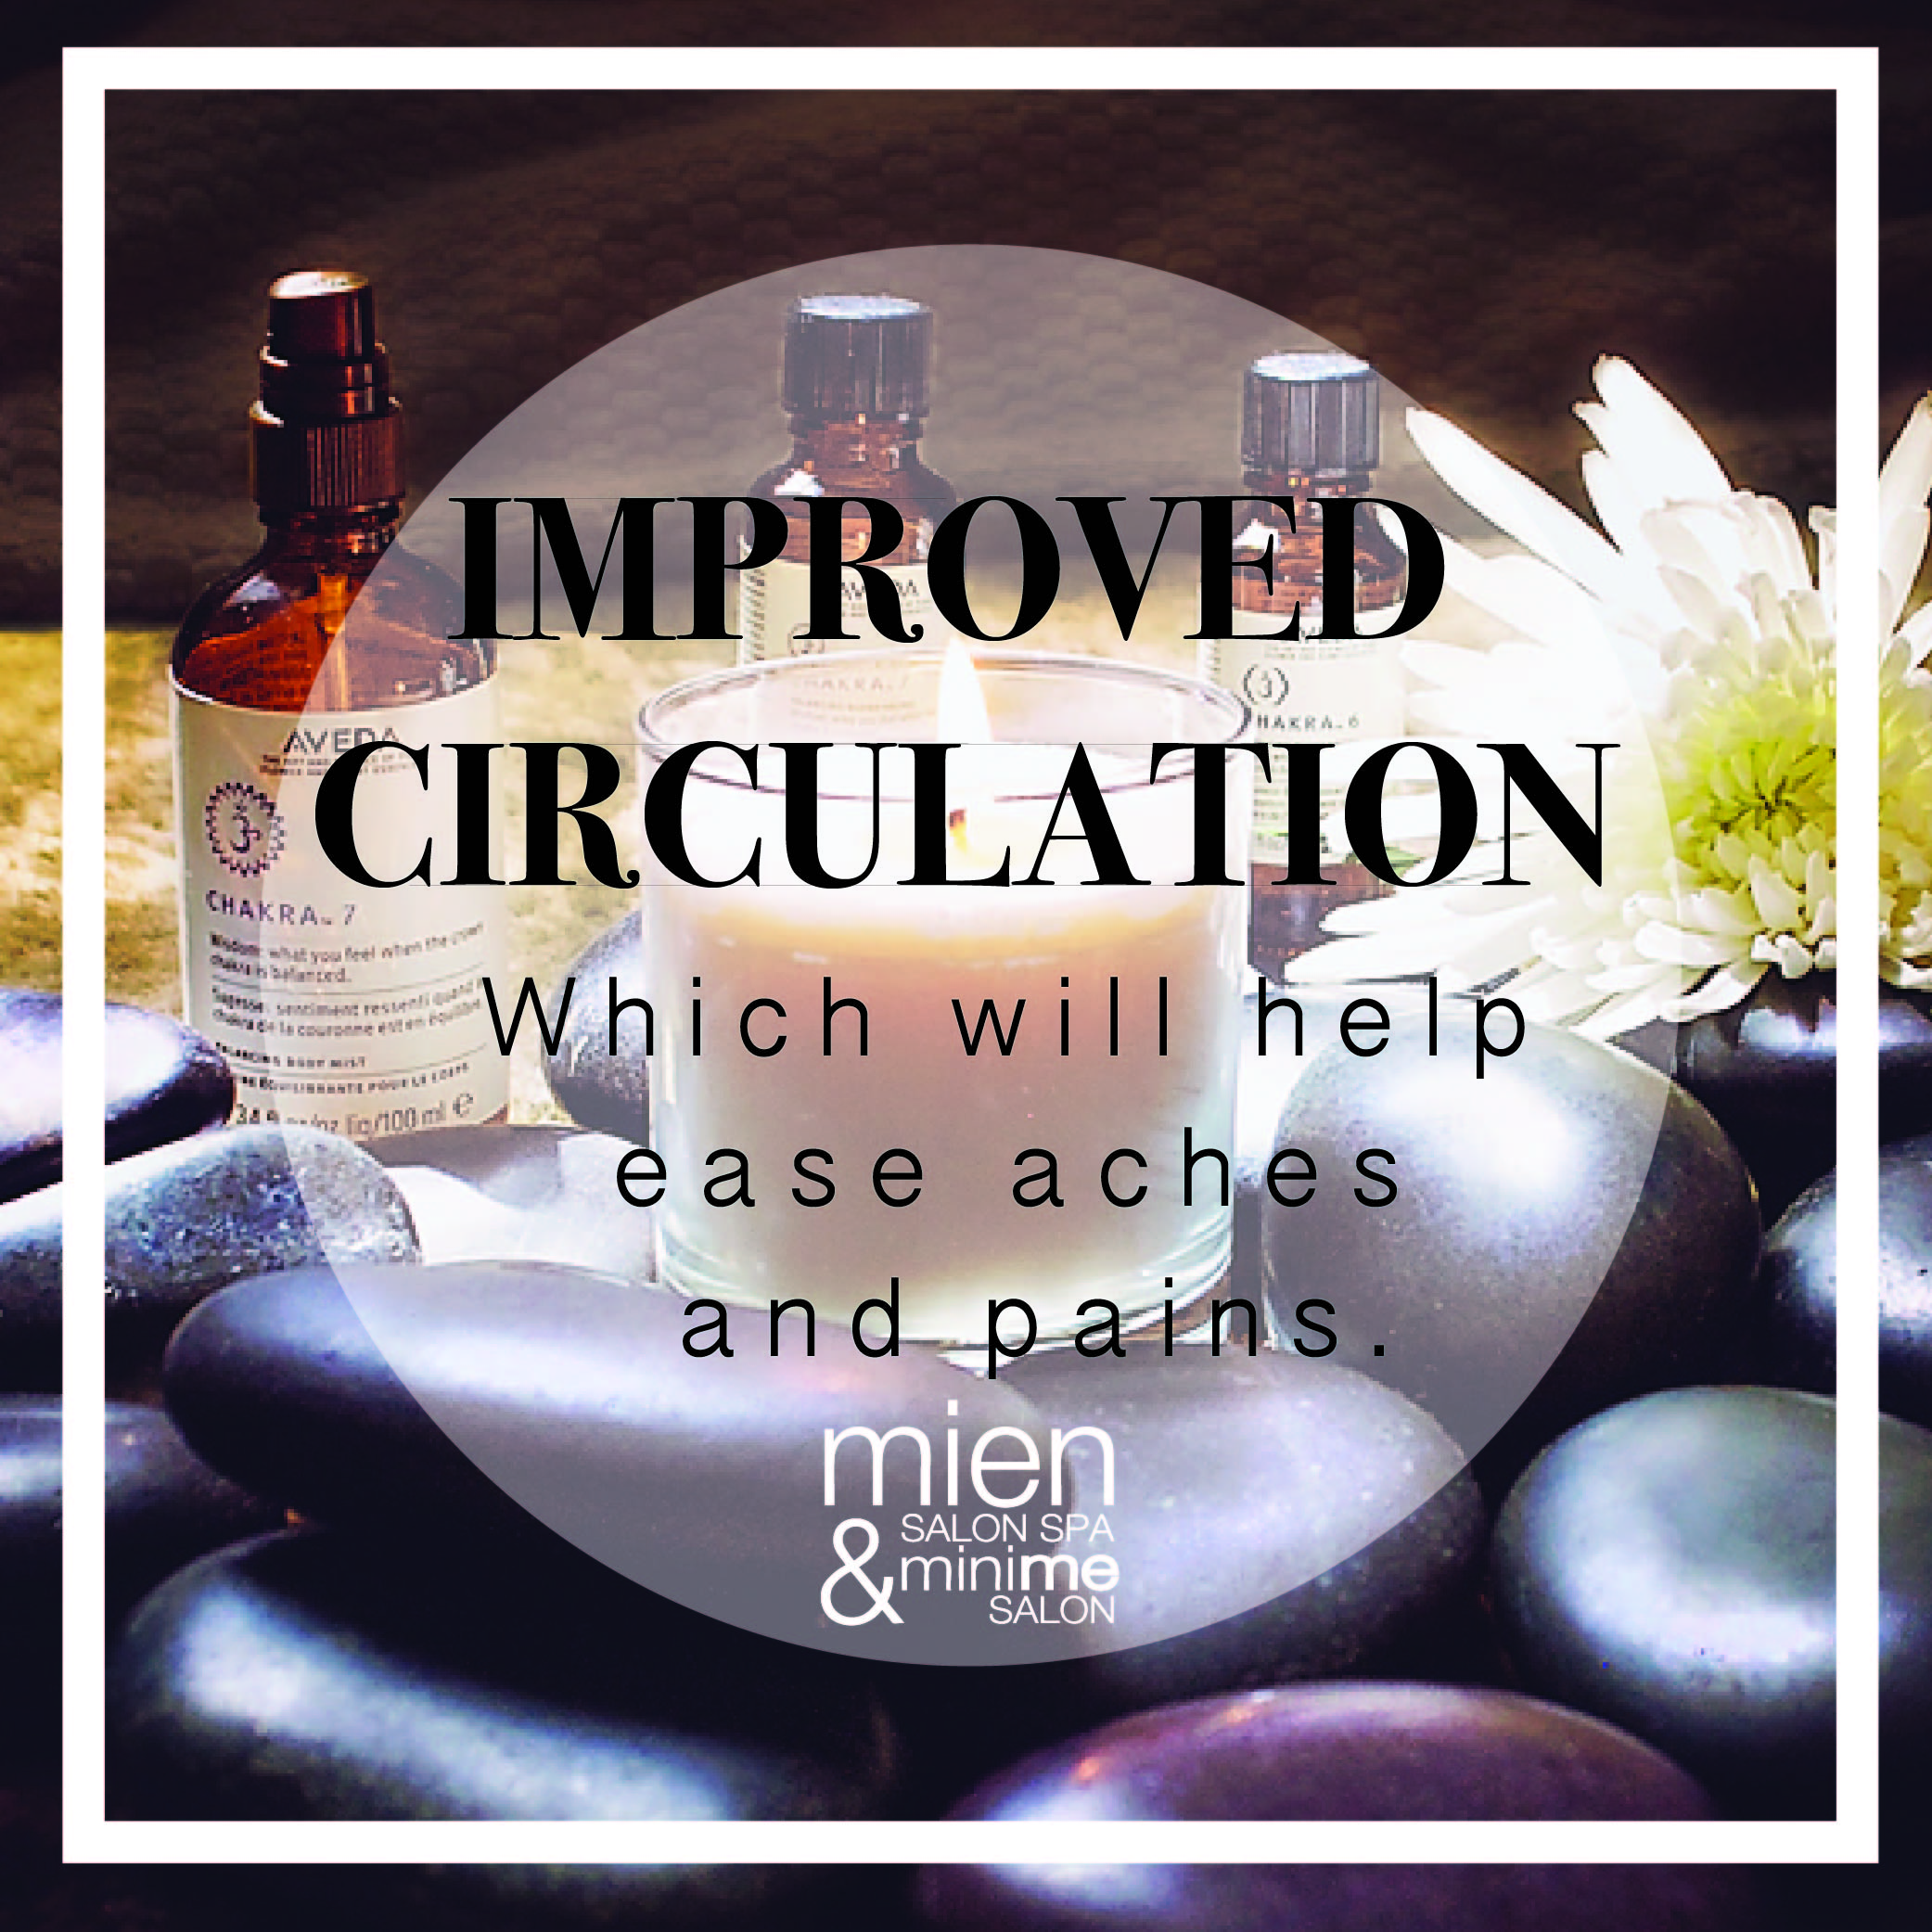 - Poor circulation can lead to fatigue. This tenses up your muscles and causes build-up of fluid and lactic acid in the muscles. Increased circulation will deliver more oxygen to the muscles.